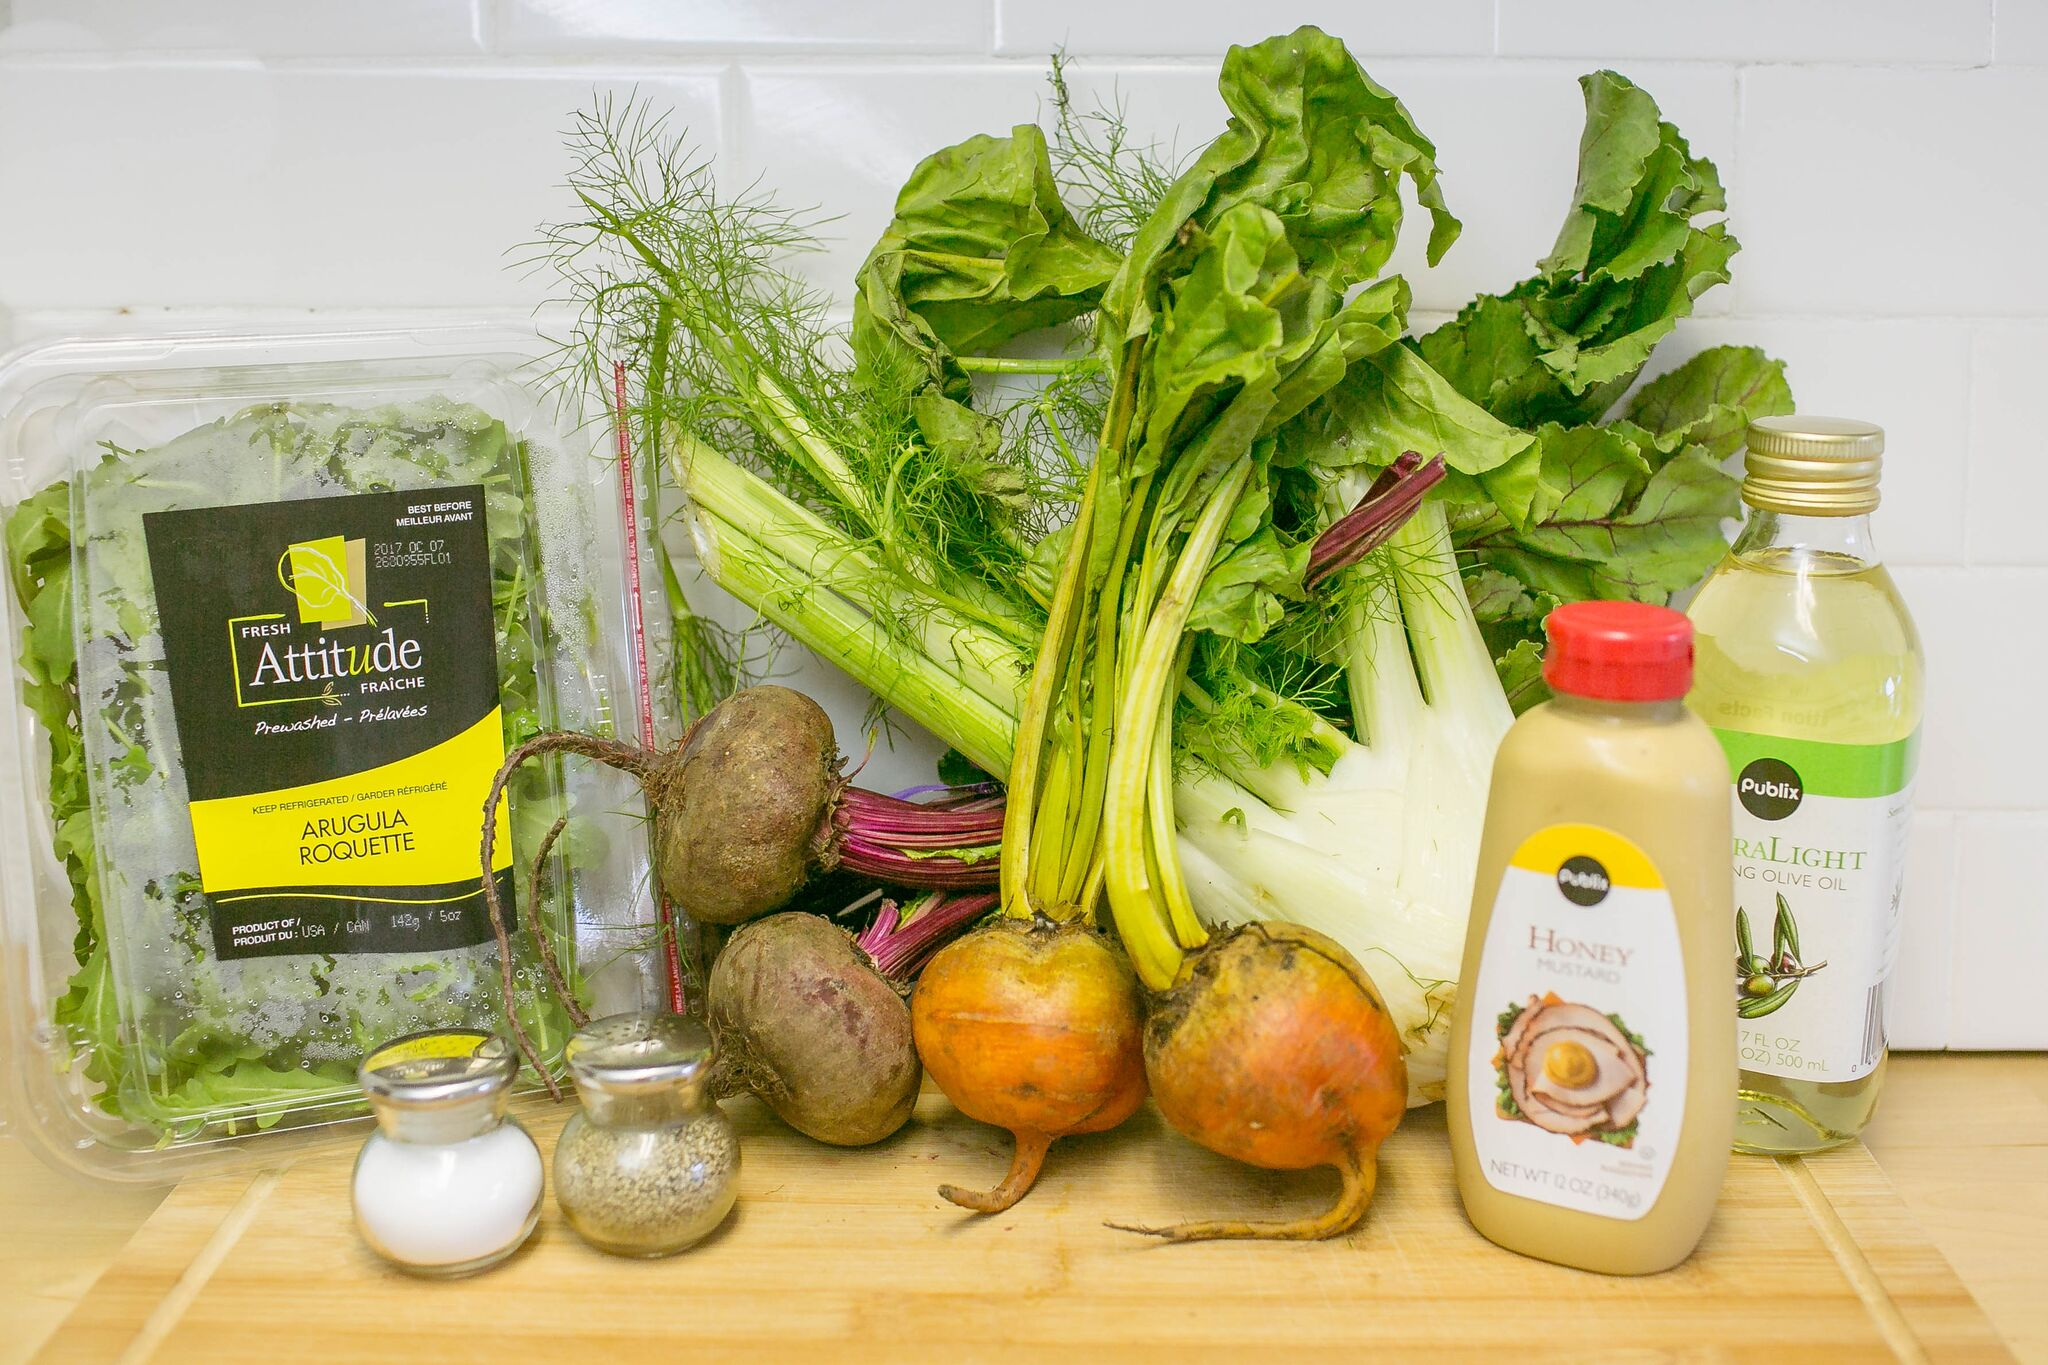 Ingredients for roasted beets and fennel salad